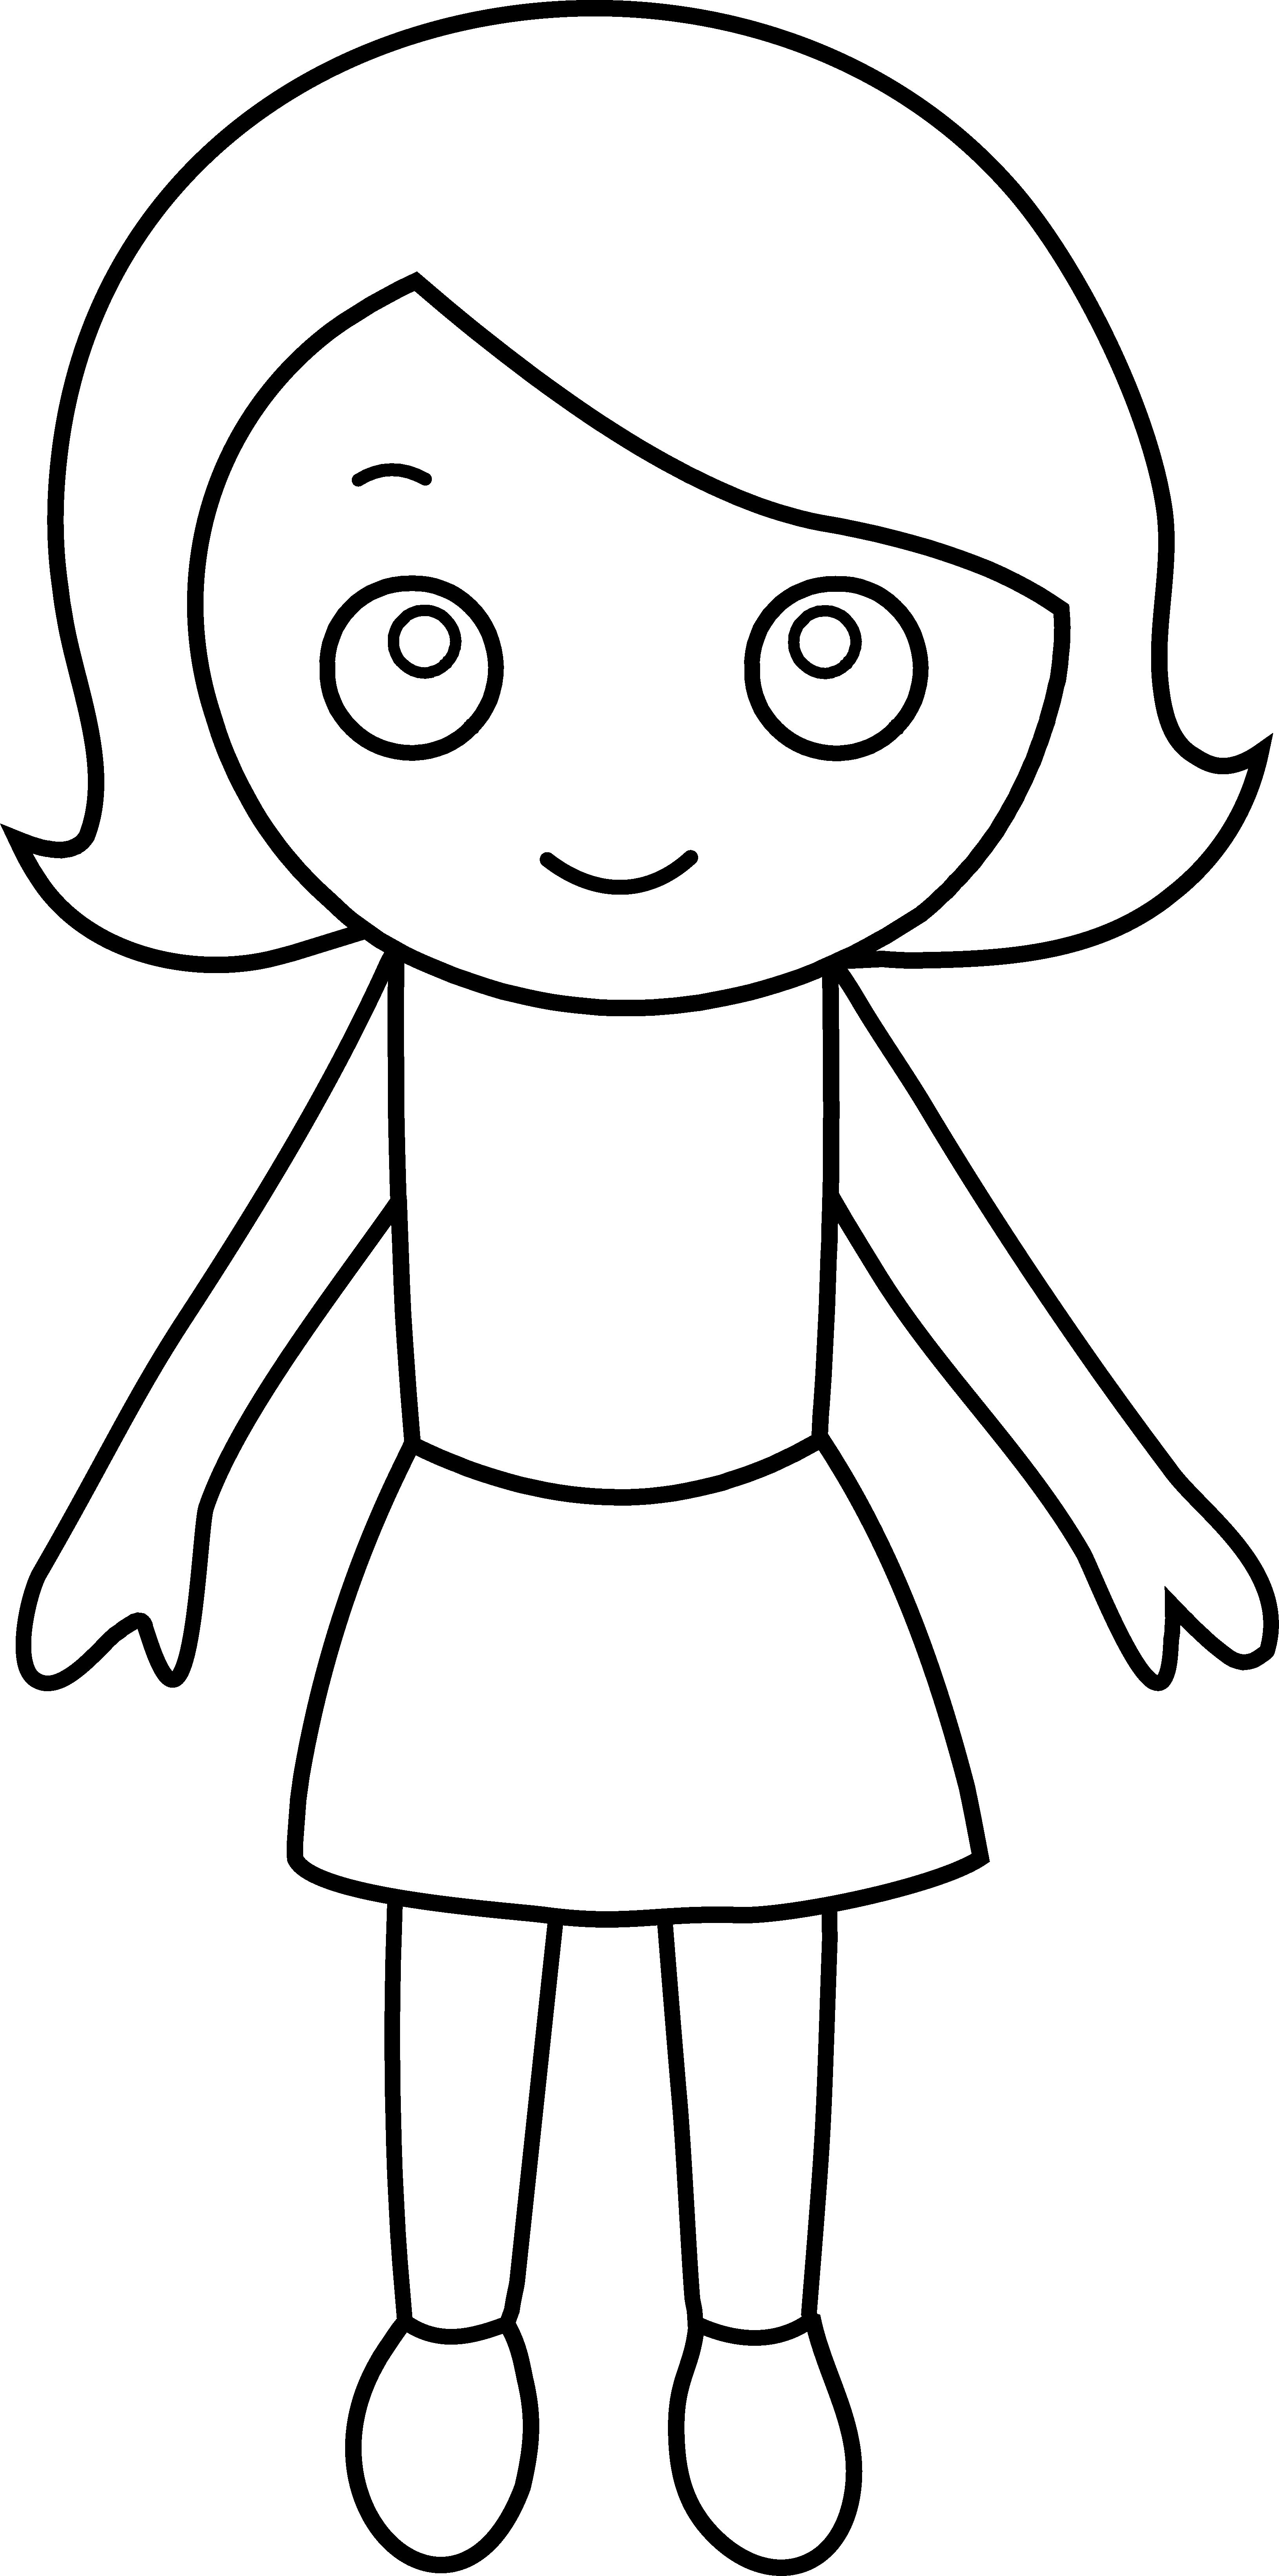 3261x6568 Little Girl Coloring Pages Little Girl Coloring Page Trend